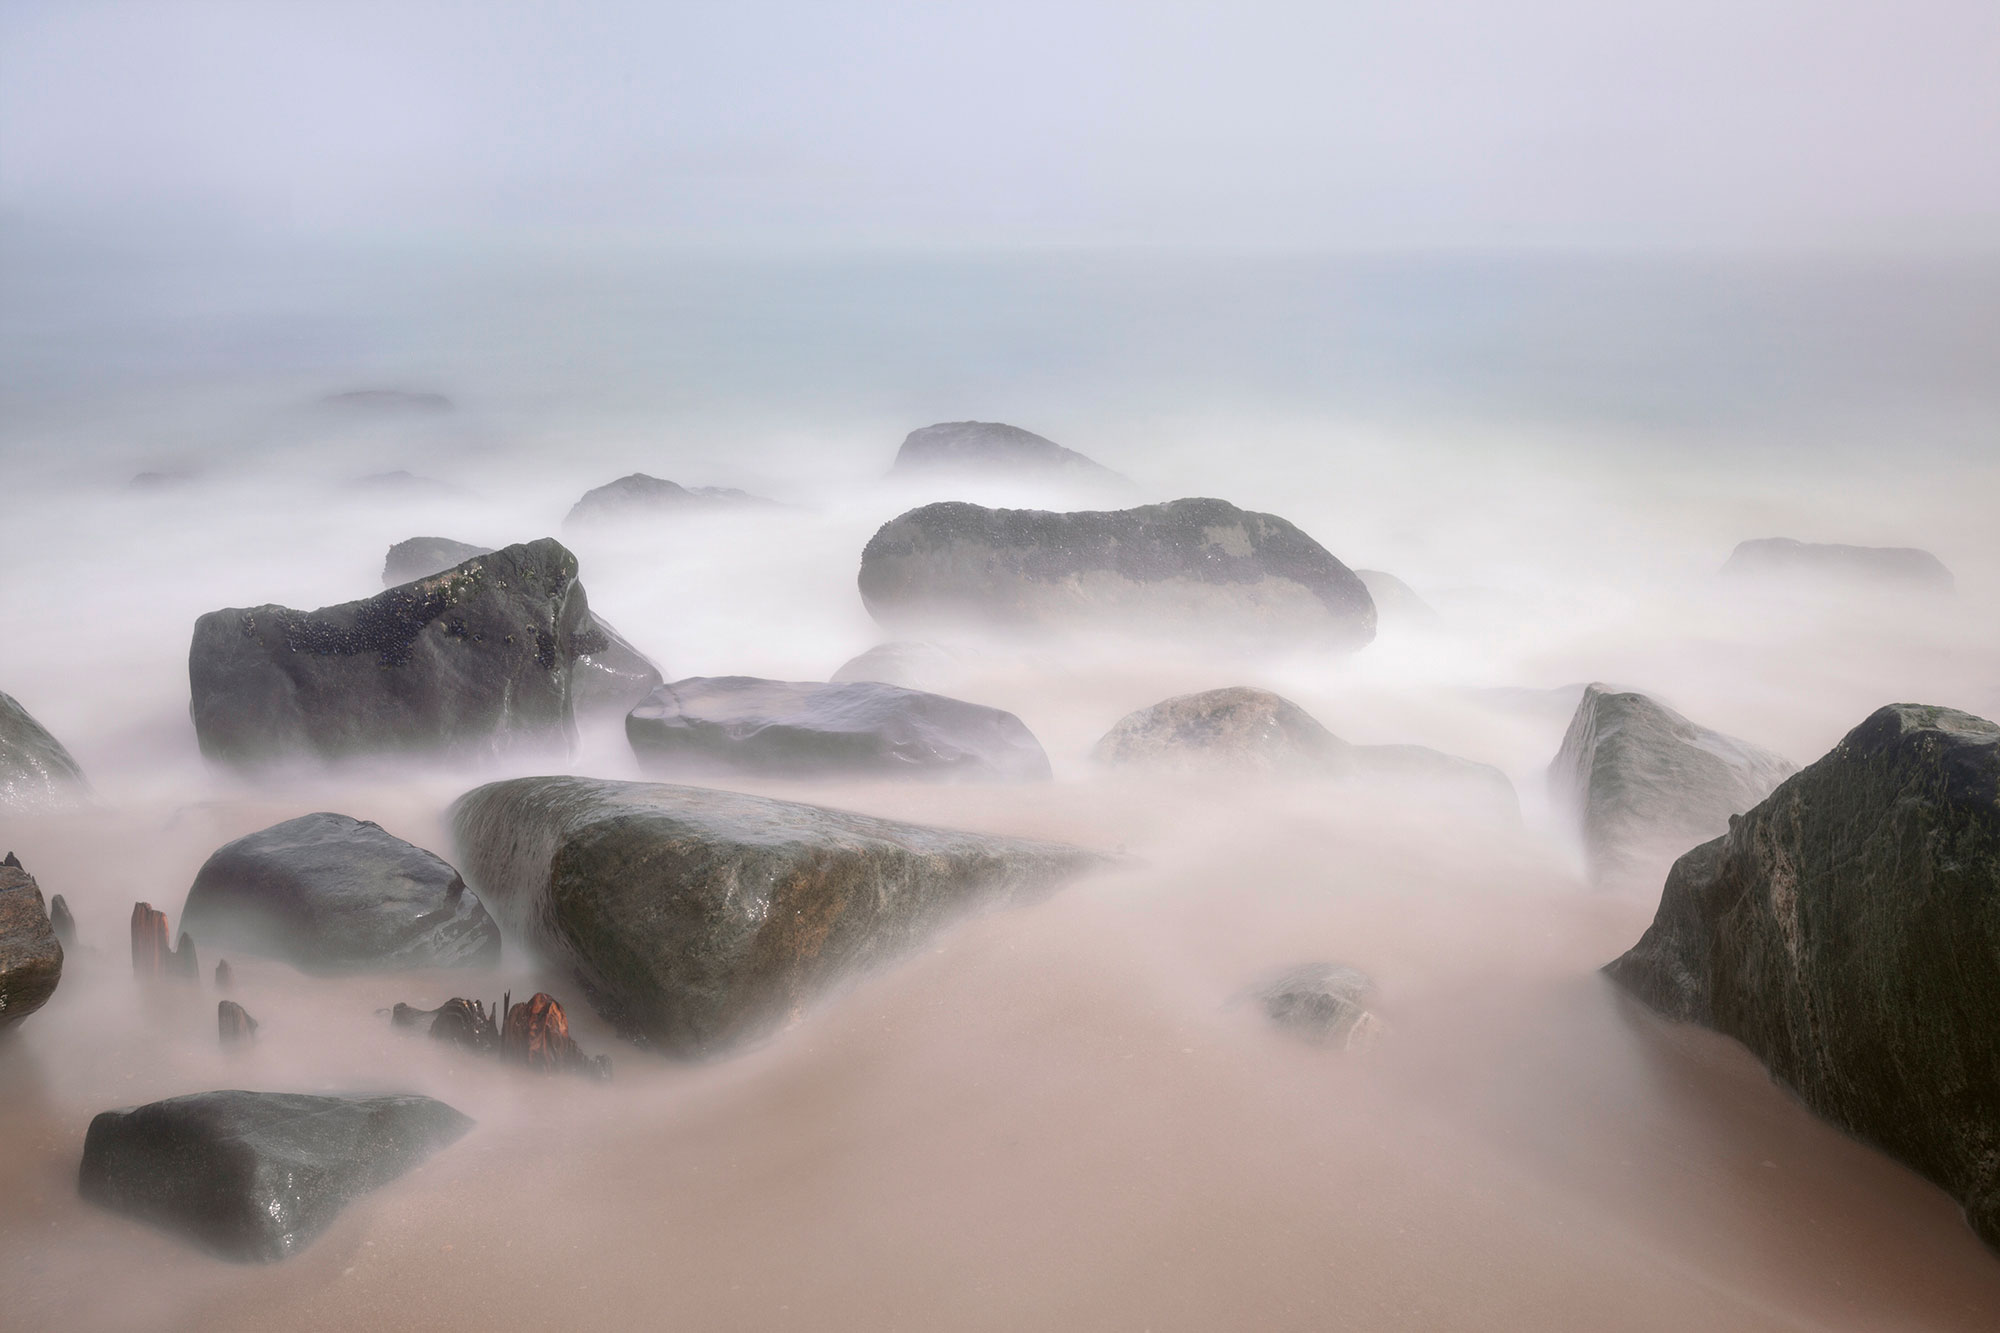 Ocean mist over rocks at Sandy Hook Beach New Jersey-Mist